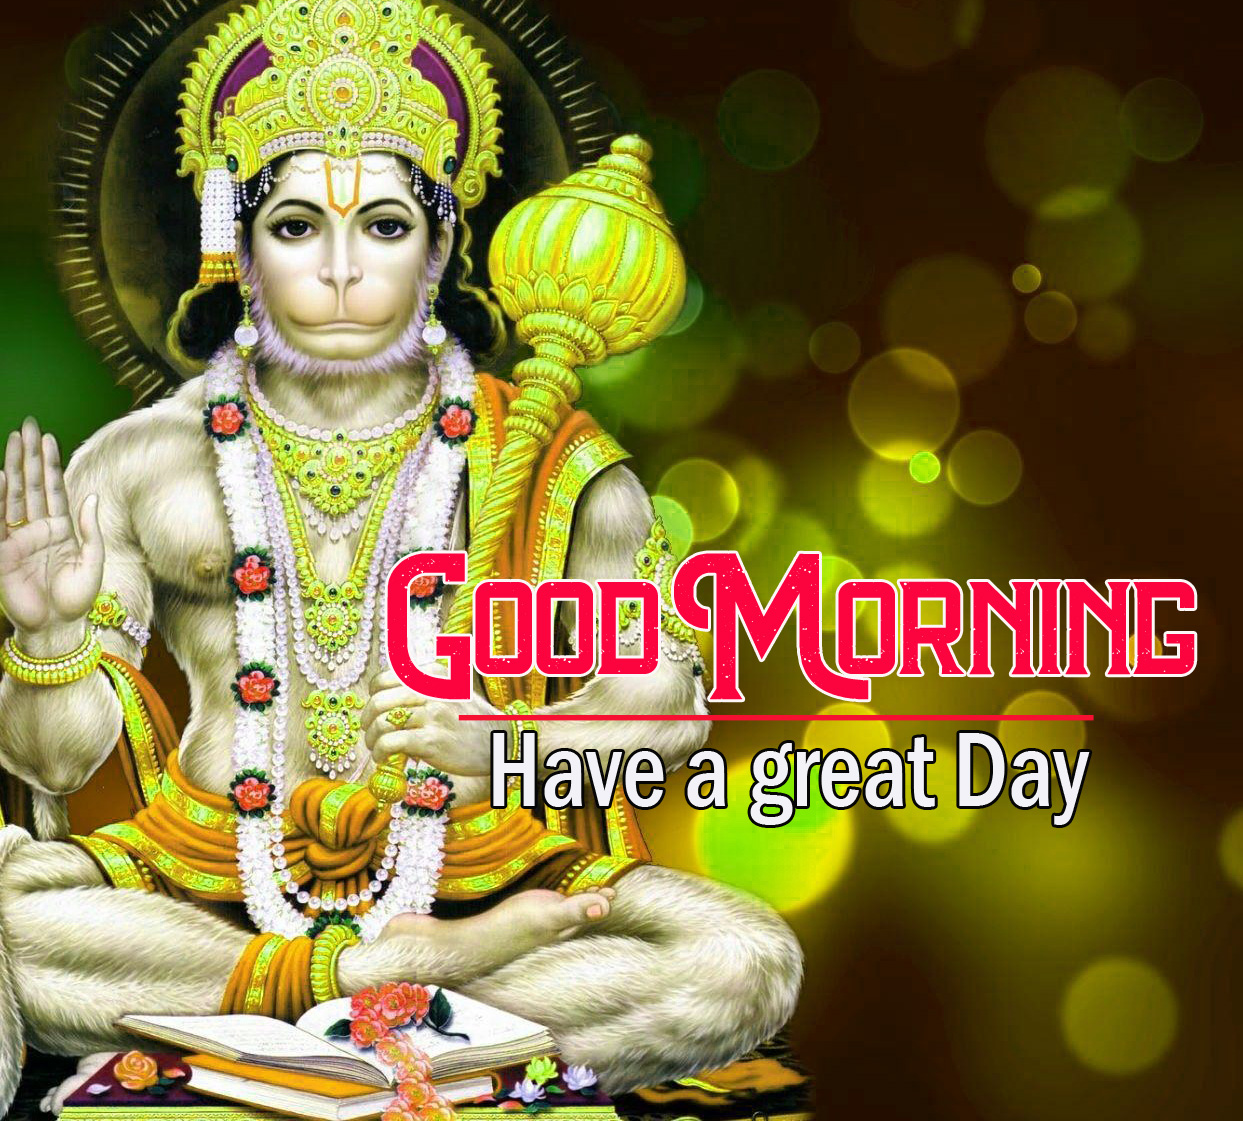 Happy Shubh Mangalwar Good Morning Images 6